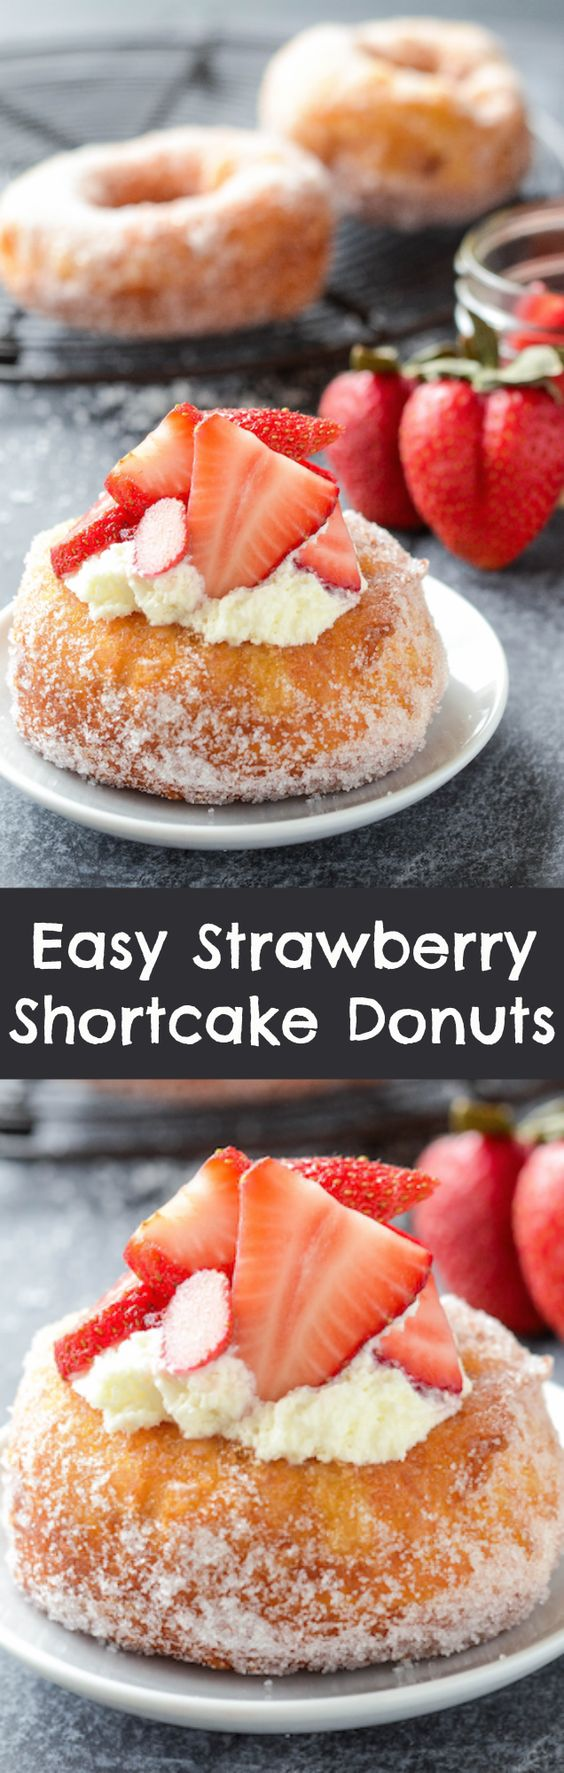 explore brunch donuts doughnuts donuts and more strawberry shortcake ...